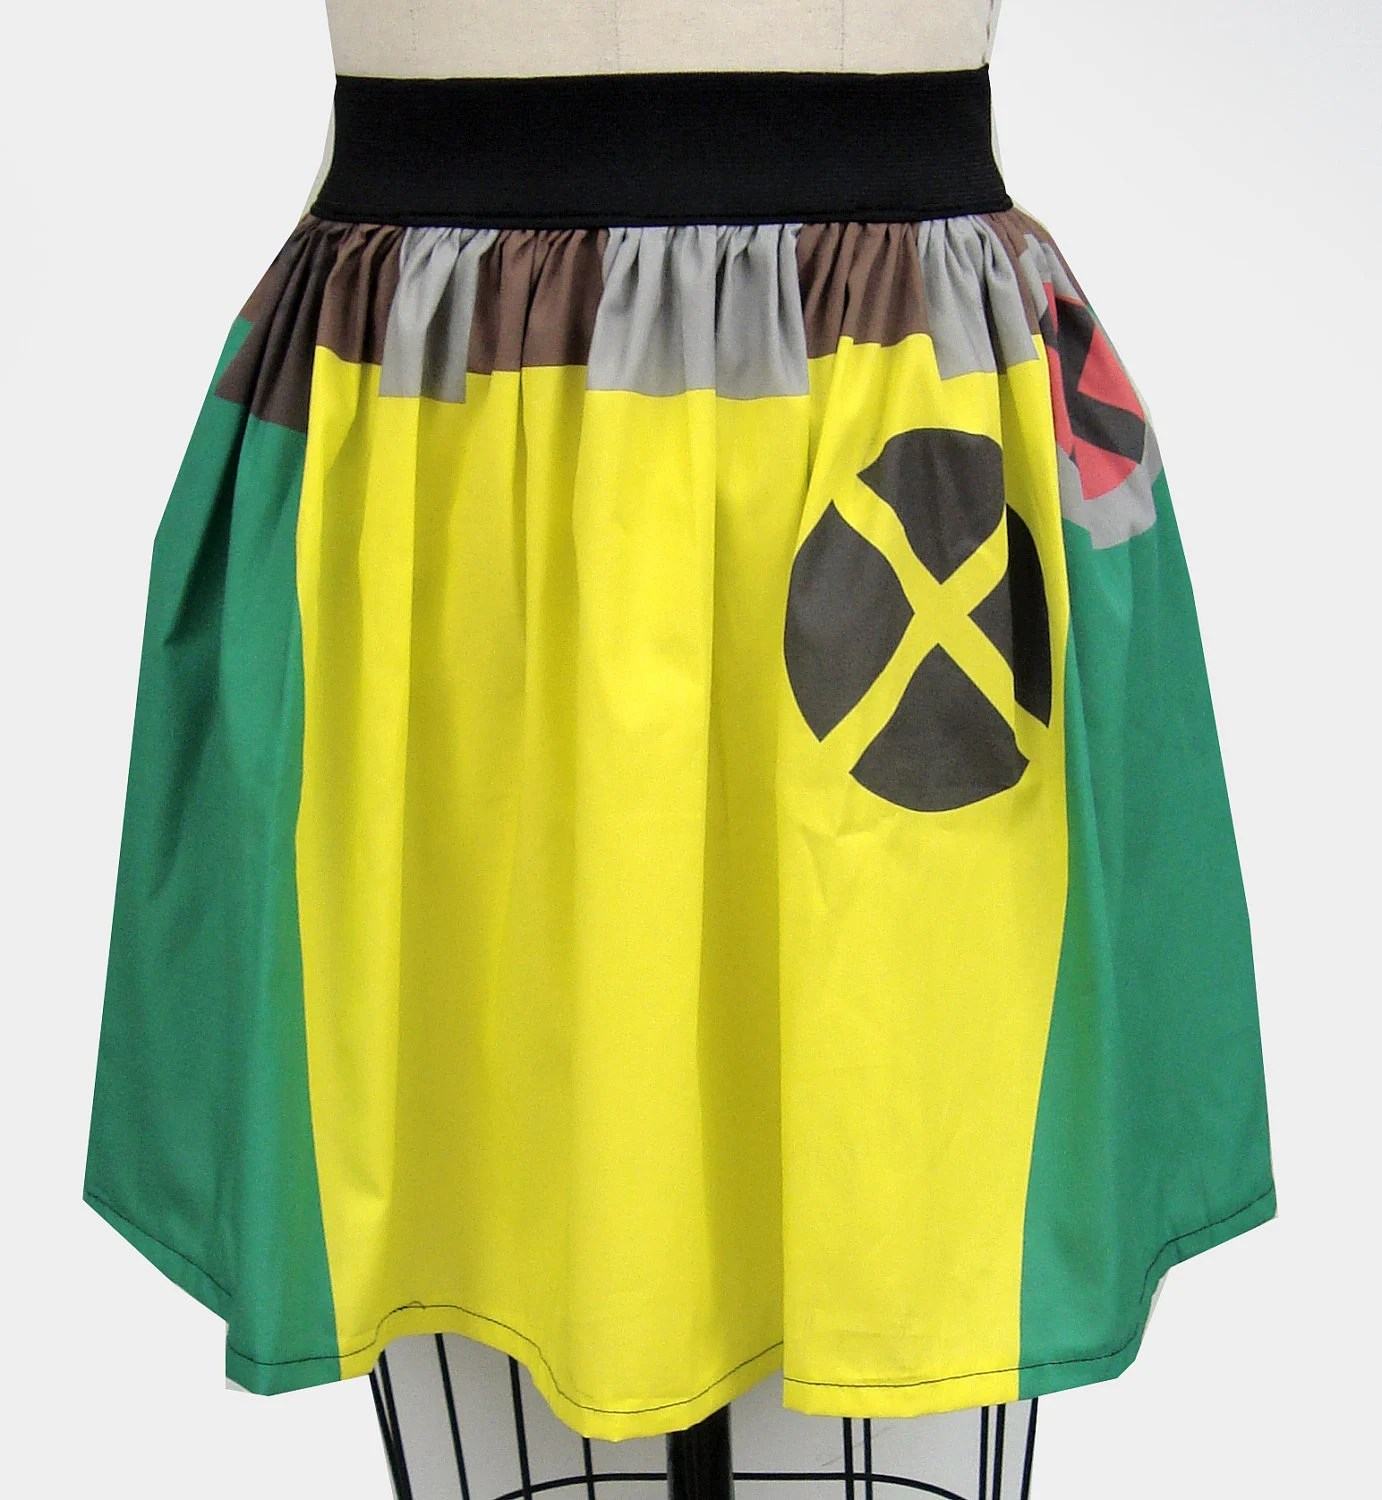 Going Rogue Full Skirt